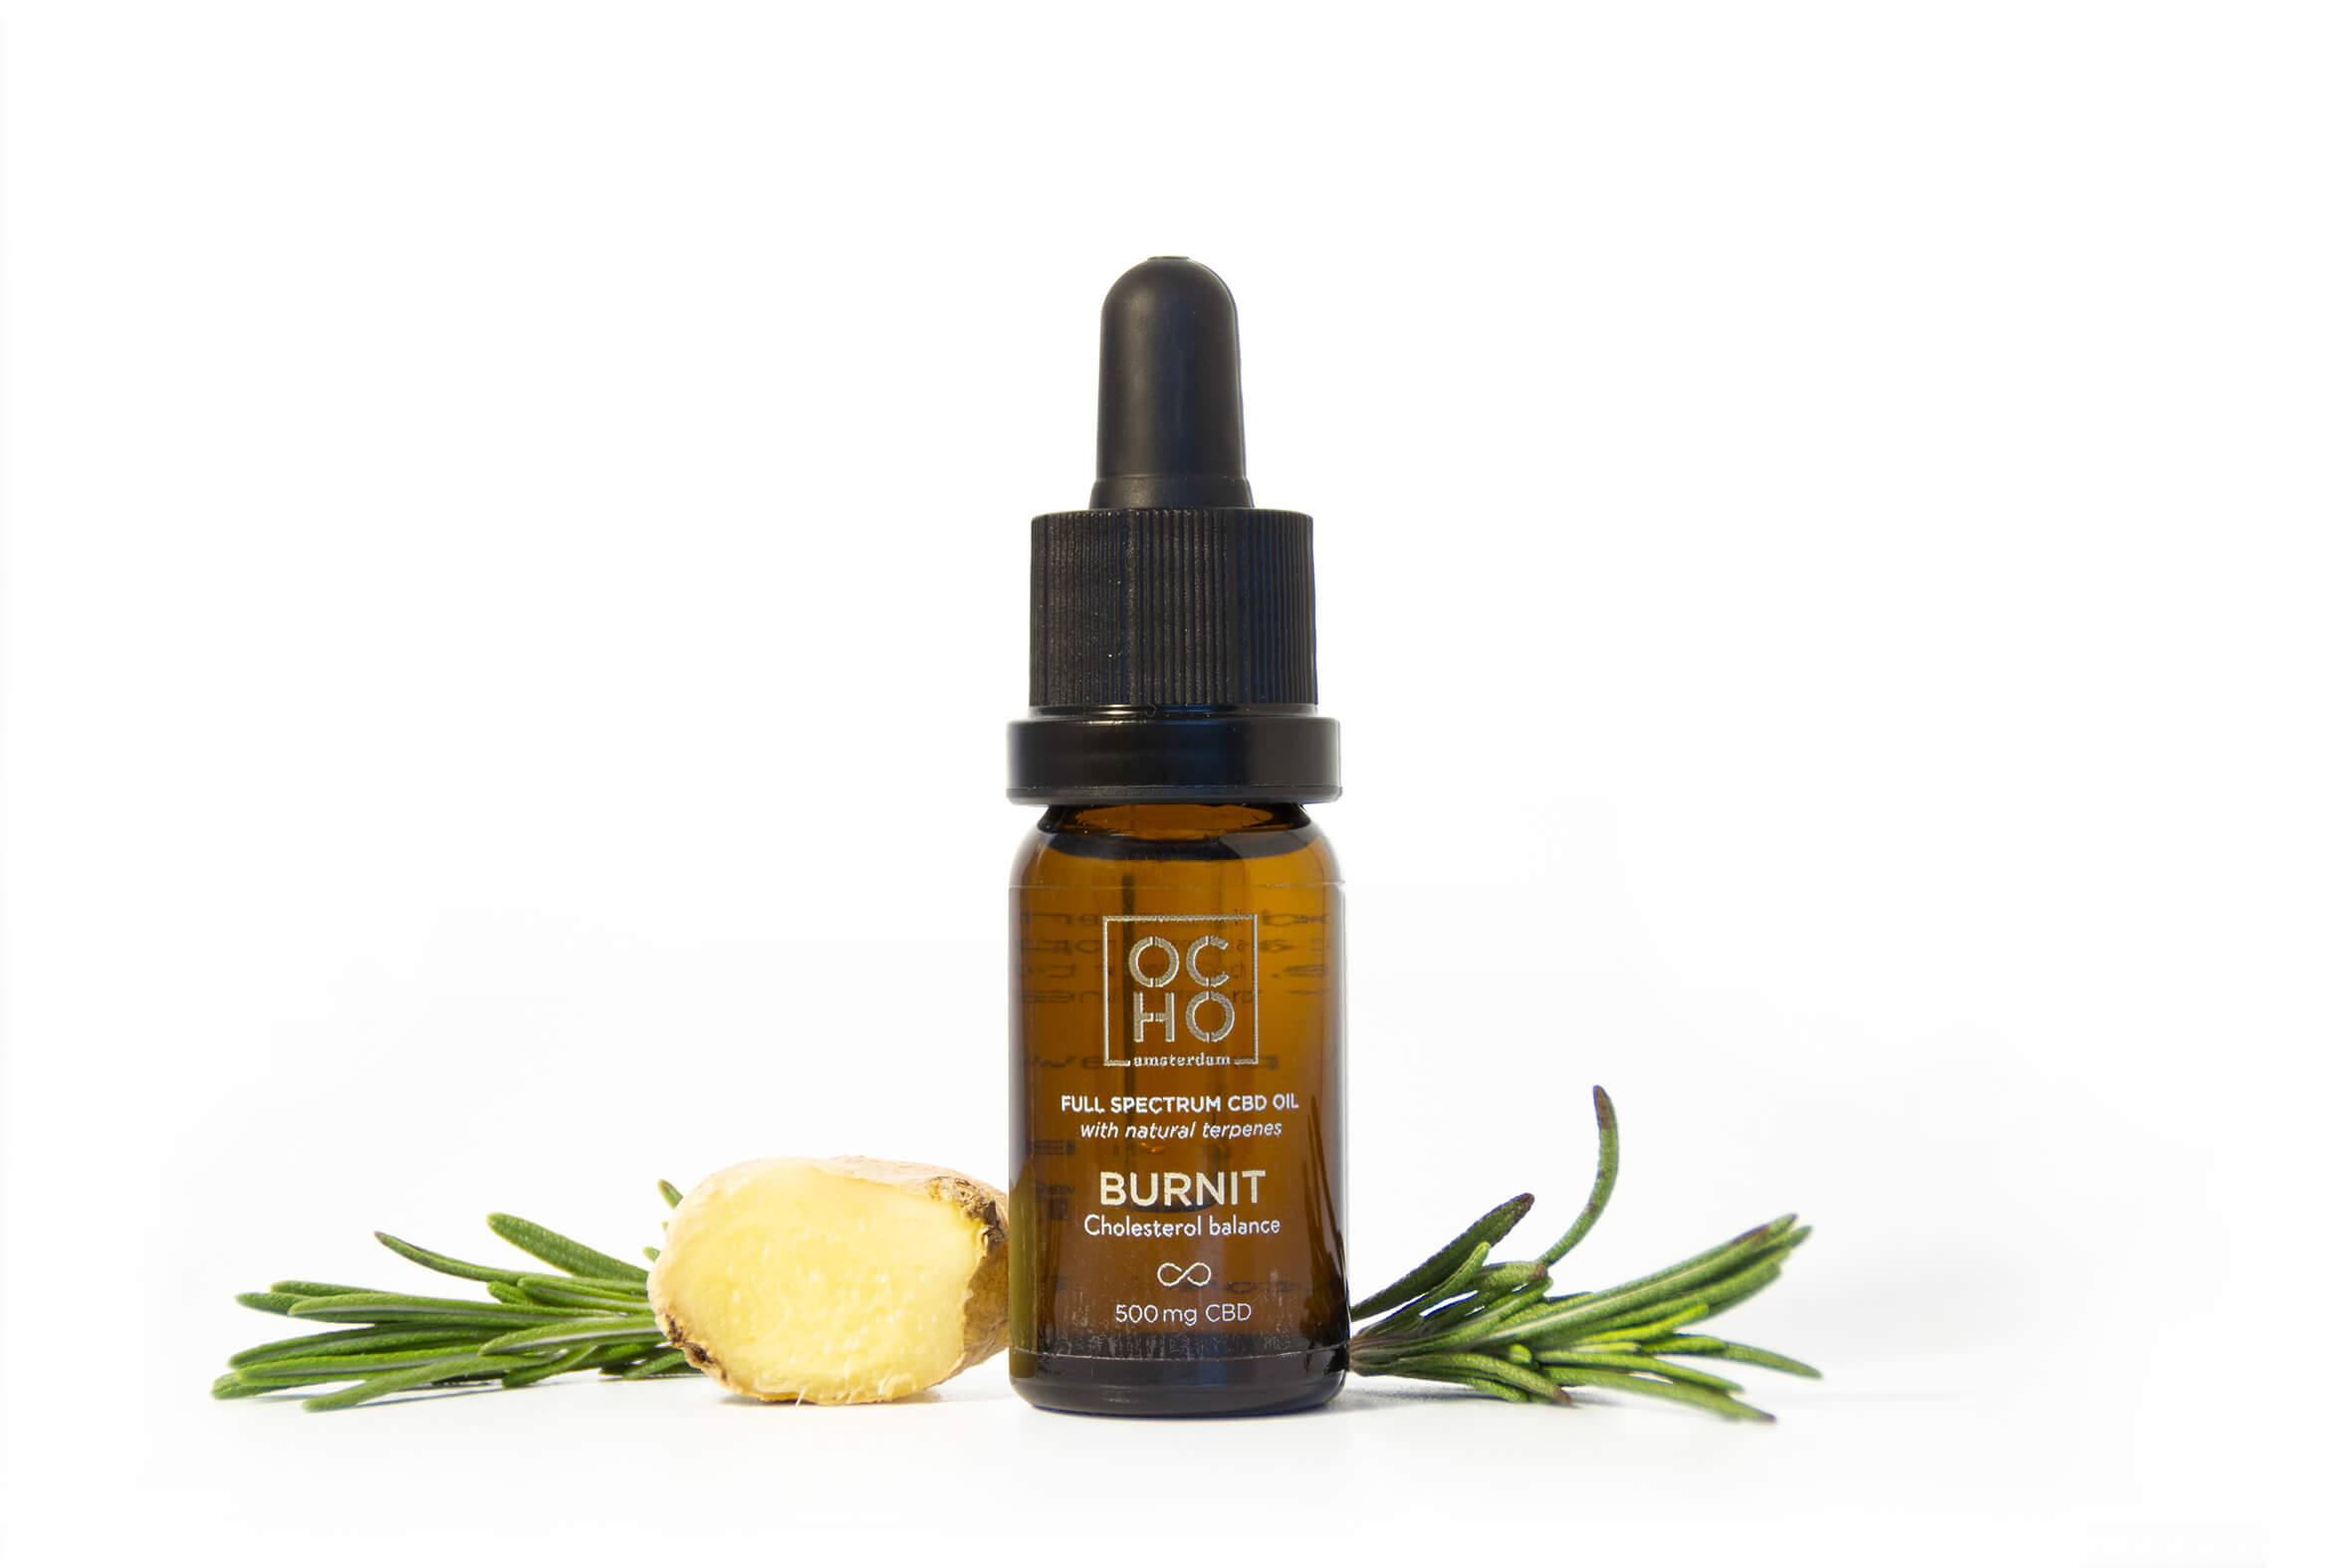 FULL SPECTRUM CBD 5% | BURNIT